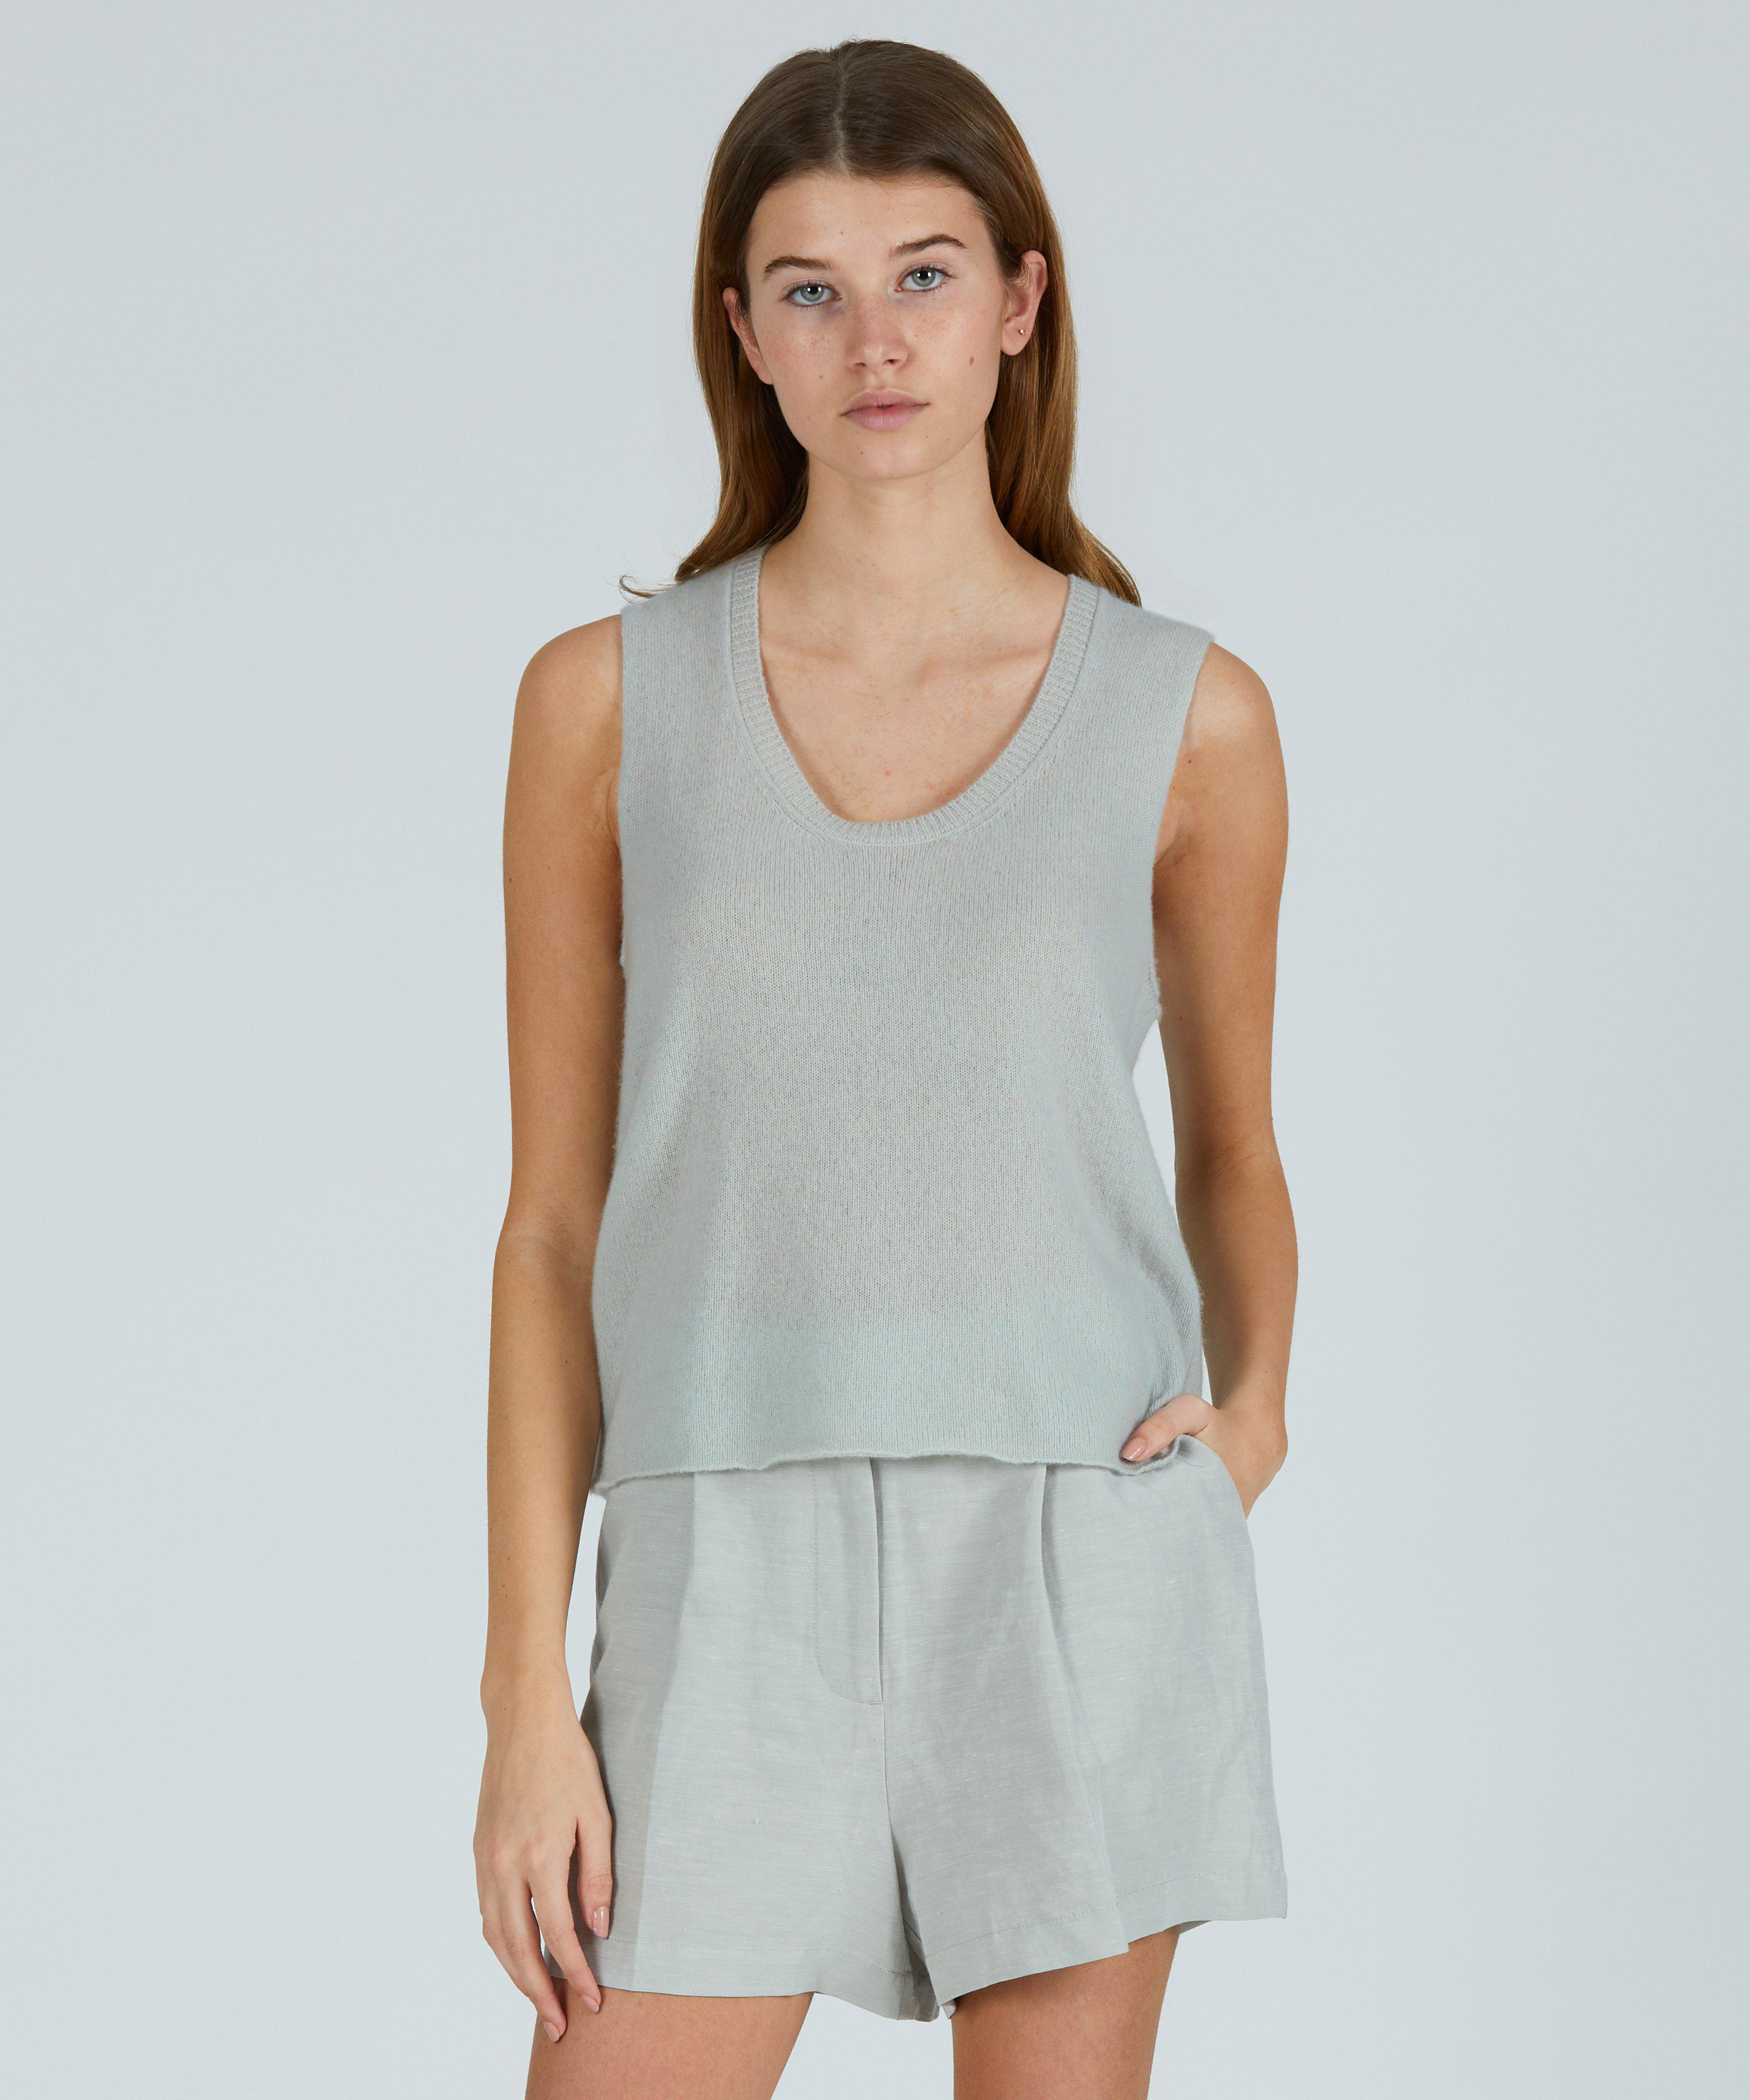 Cashmere Scoop Neck Tank - Frost